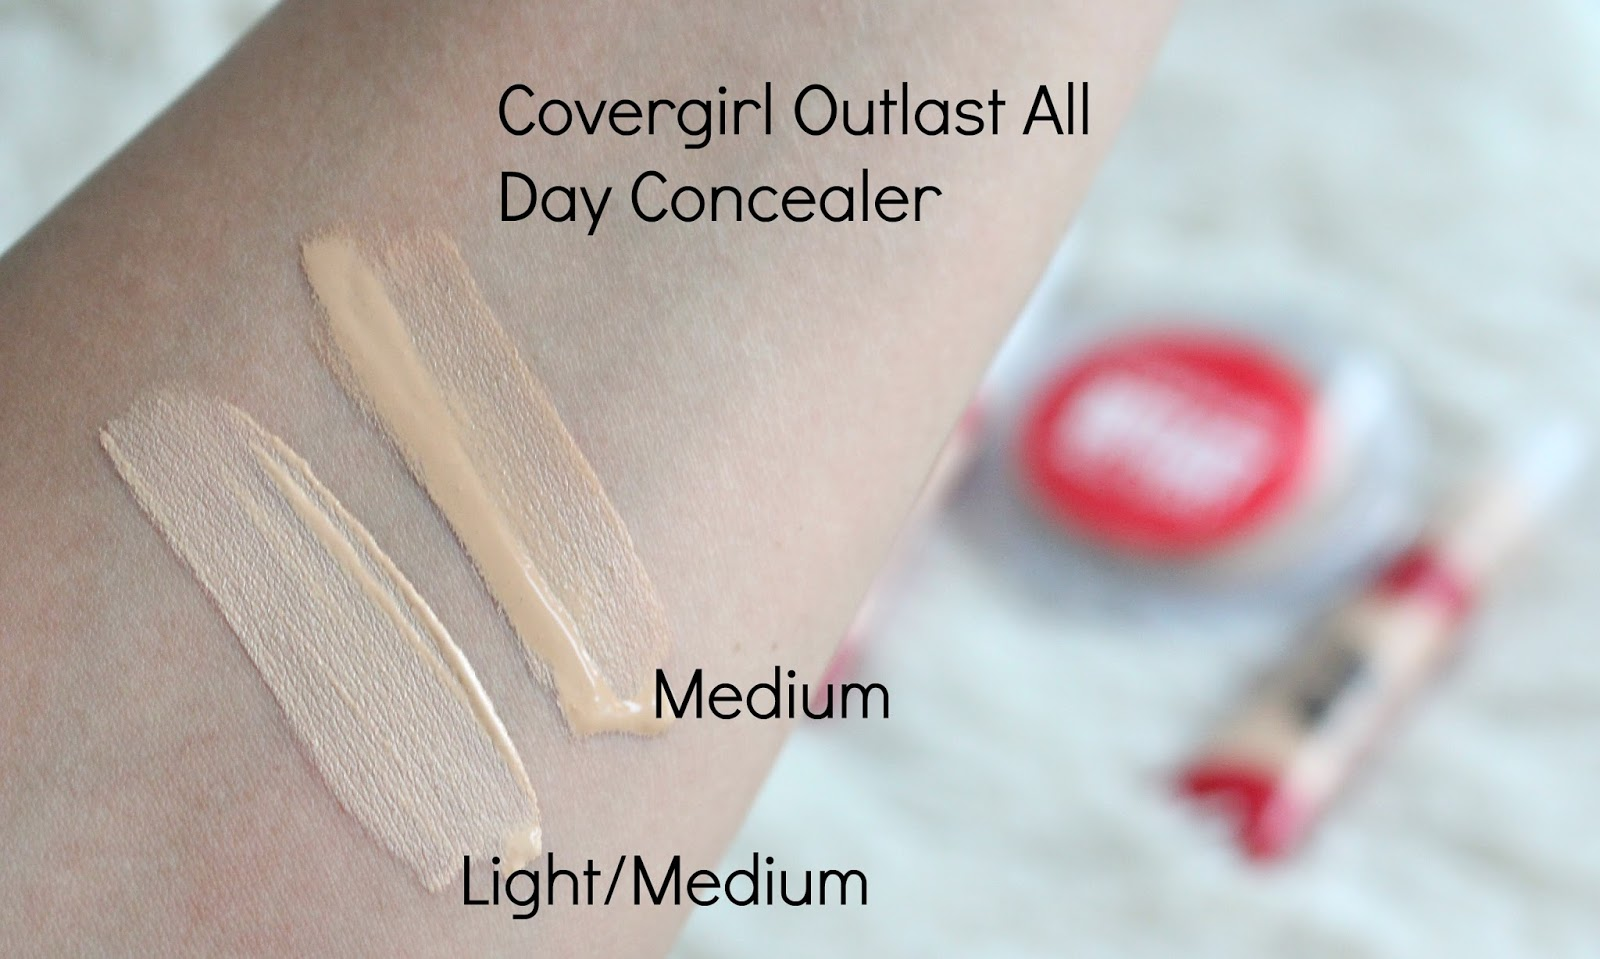 covergirl outlast concealer swatches